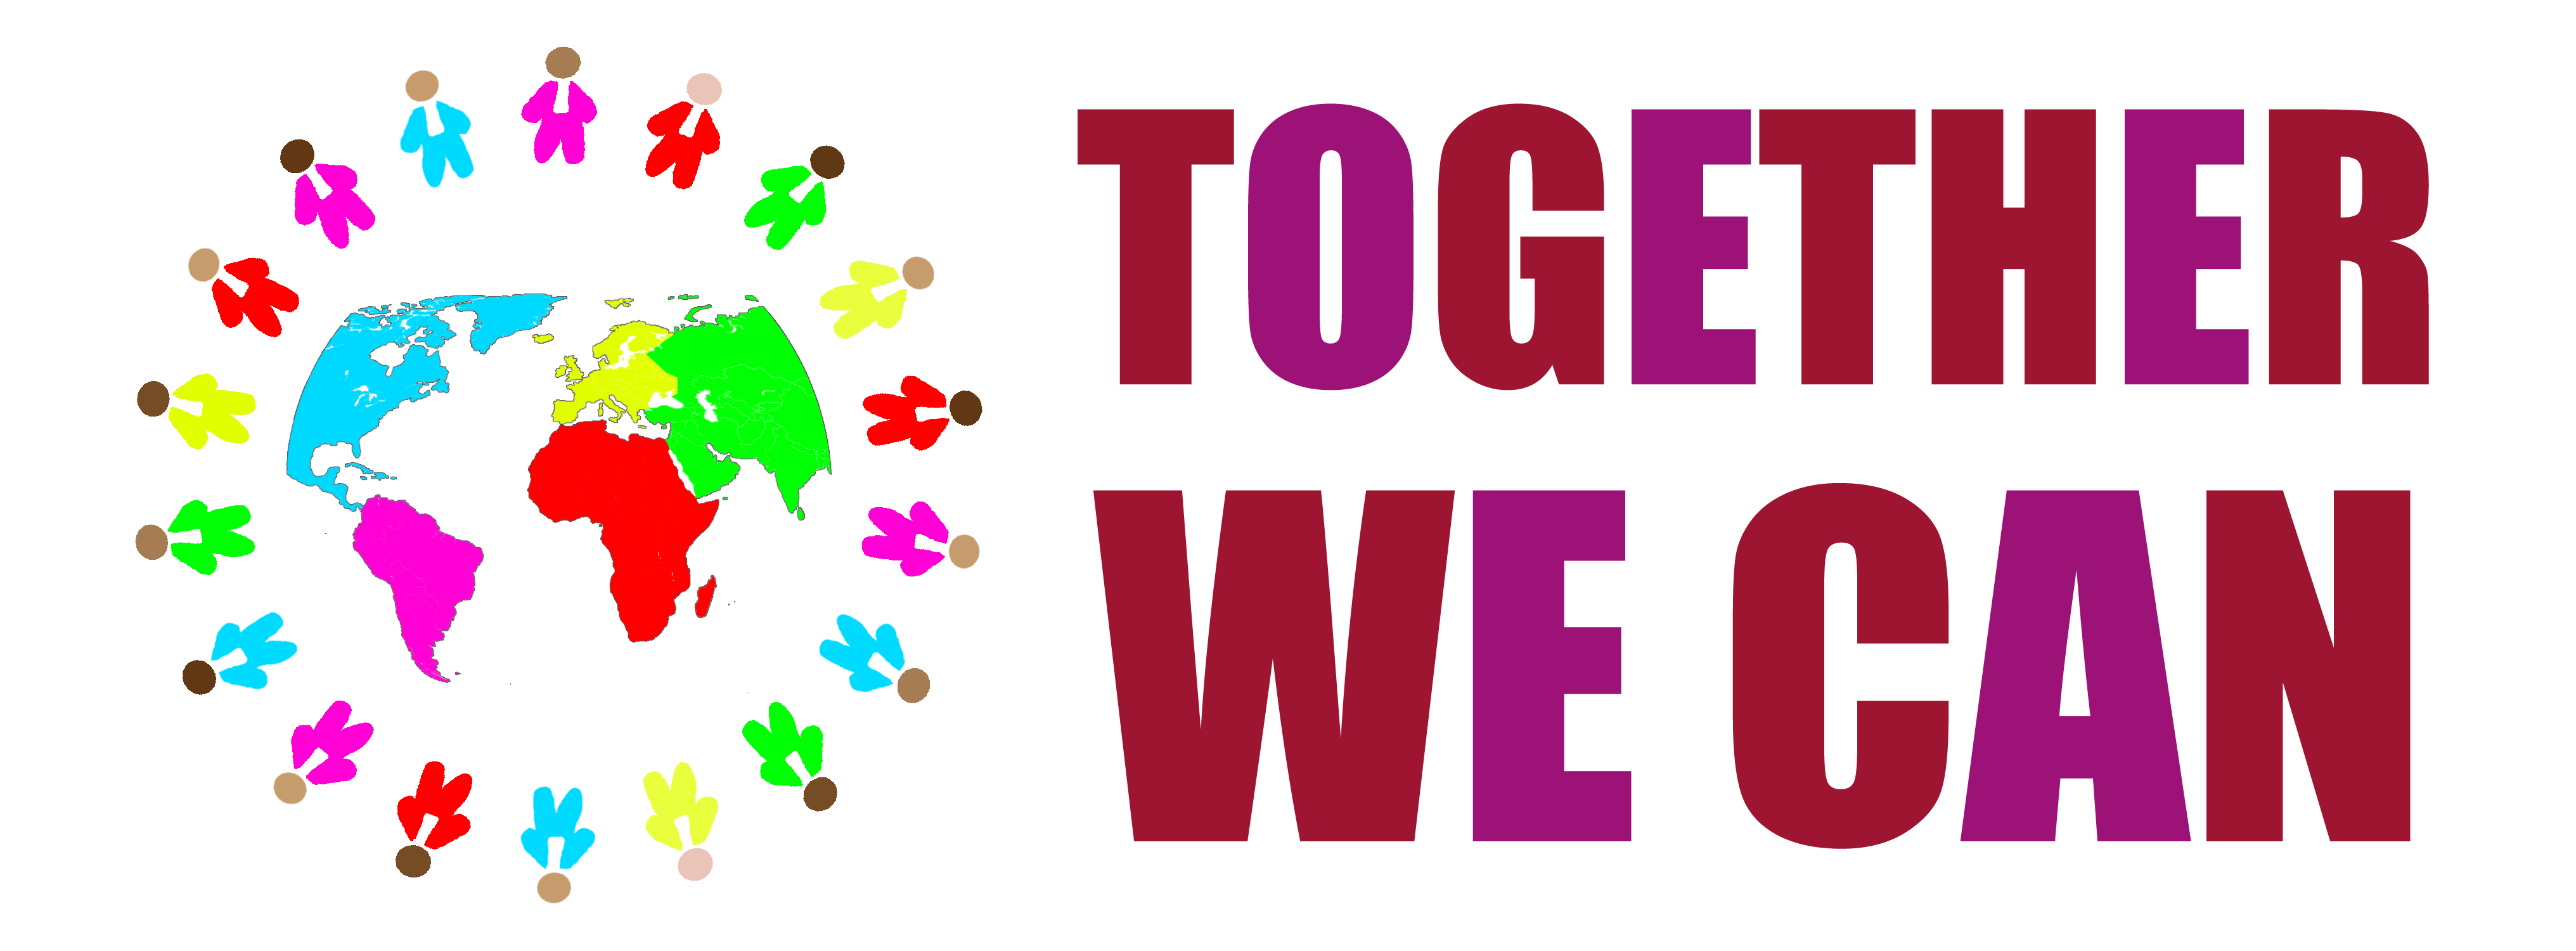 Together We Can is a global nonprofit whose mission is to provide opportunities and assistance for people in need.